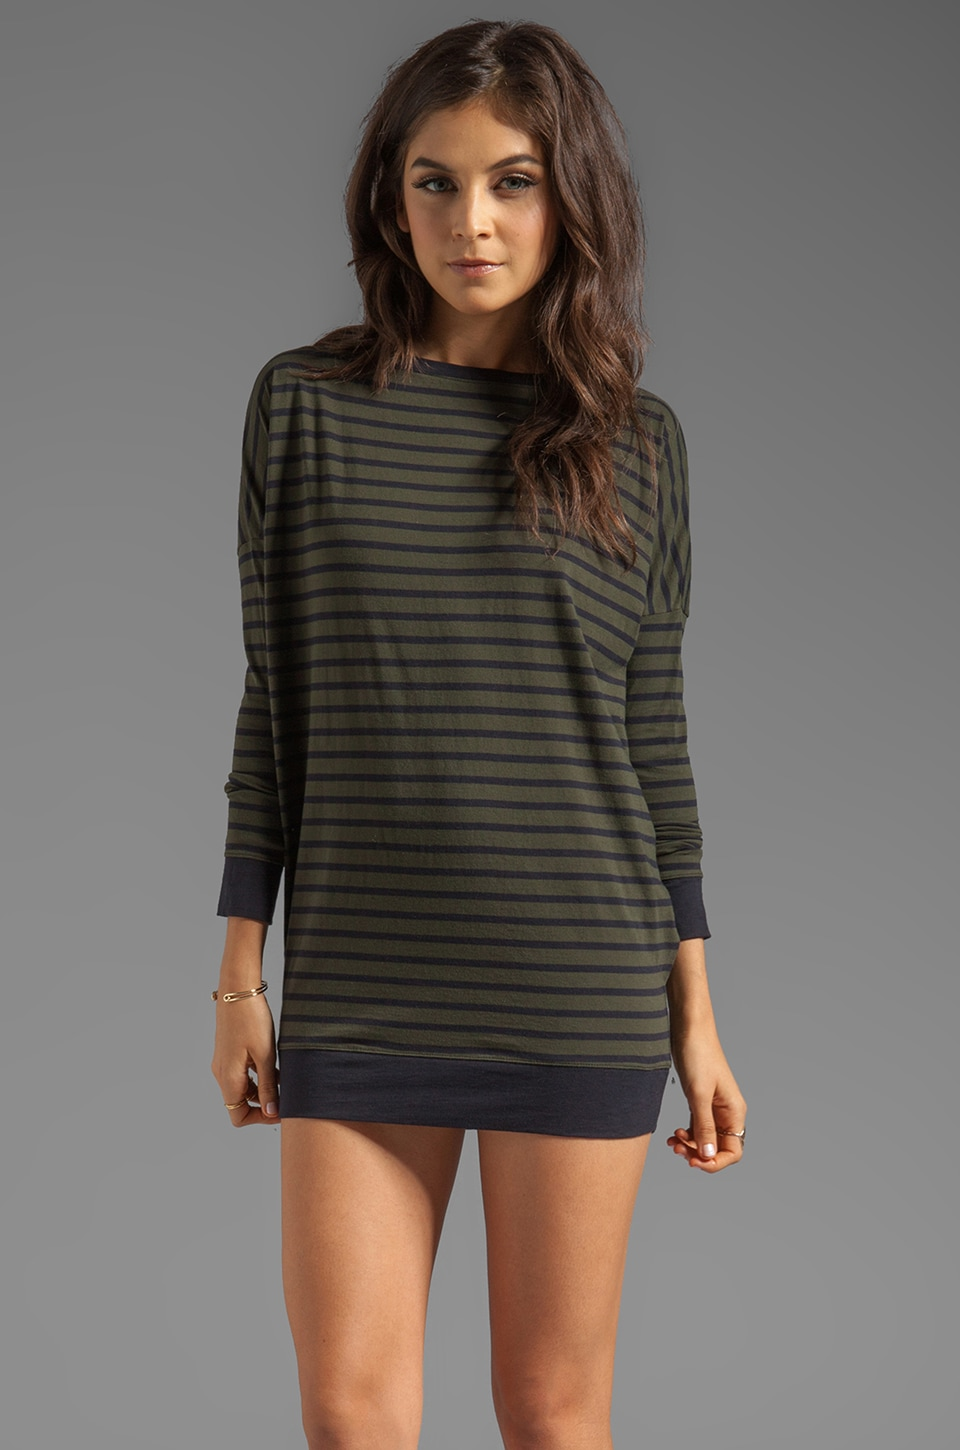 DemyLee Charlie Stripe Tunic in Army Green/Navy